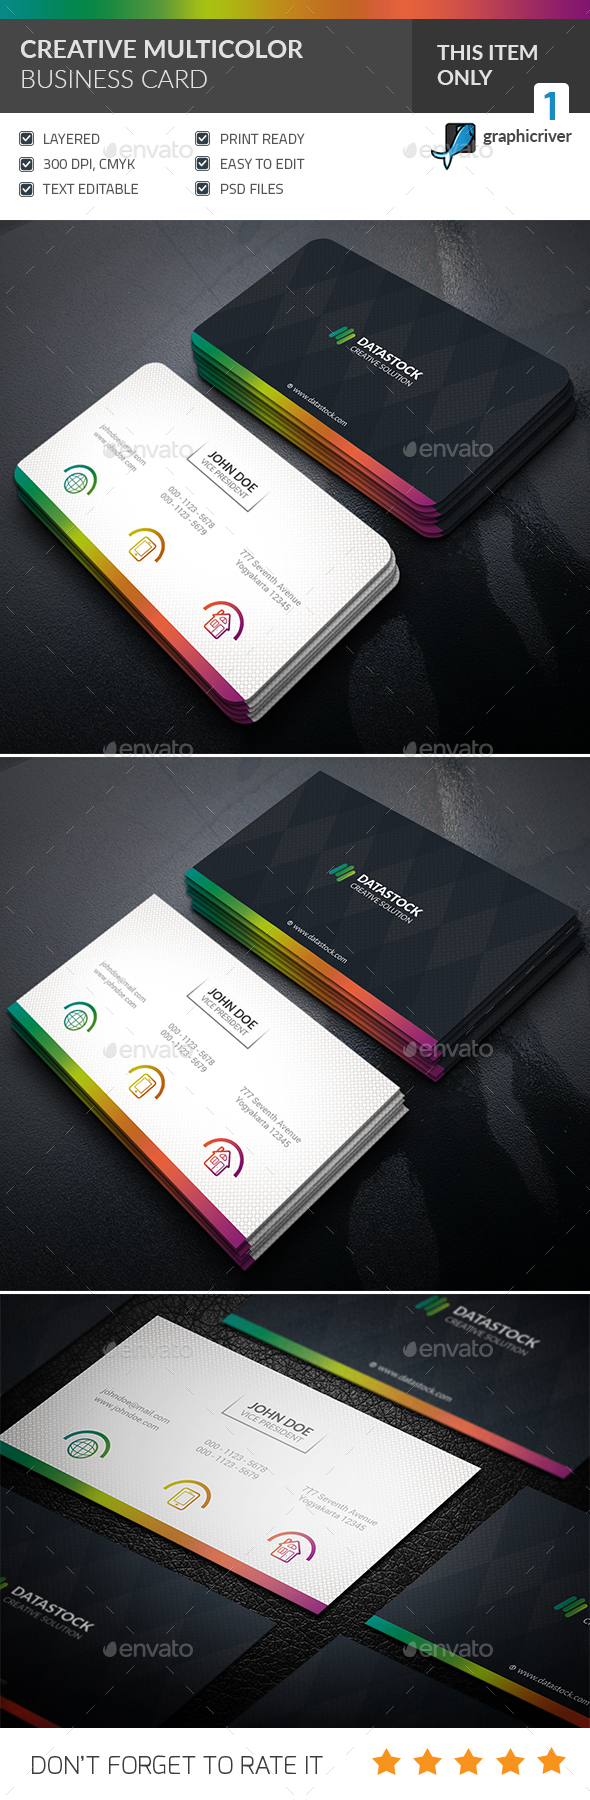 Multicolor Corporate Business Card - Corporate Business Cards